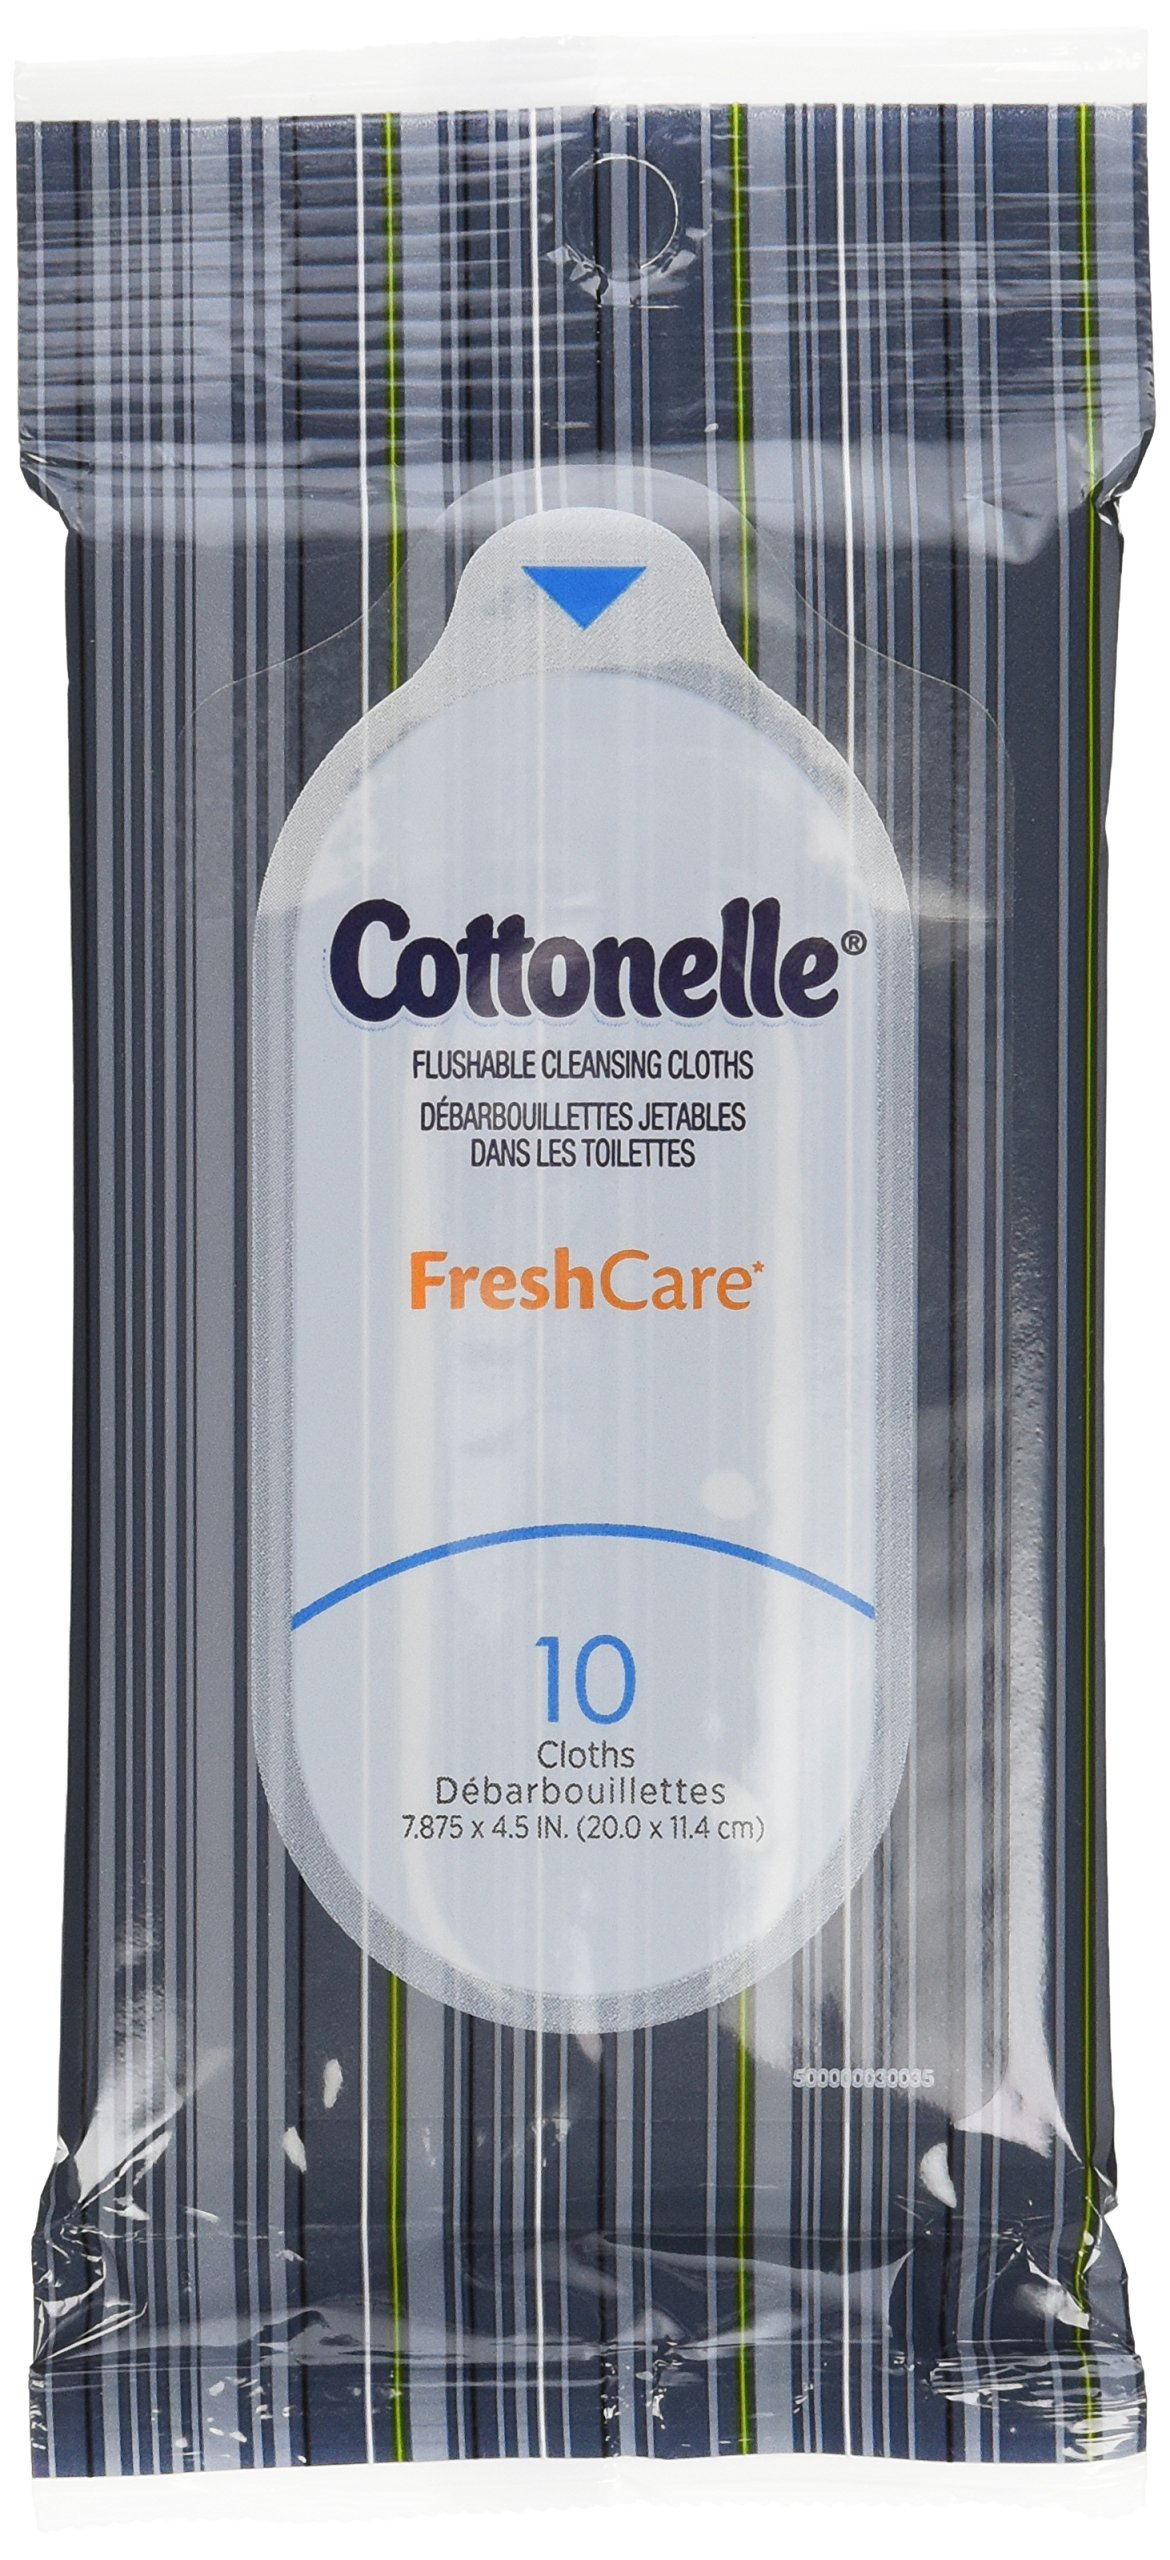 Cottonelle Fresh Care Flushable Wipes, Travel Pack, 12 Travel Packs of 10 Cloths Each (120Ct) by Cottonelle